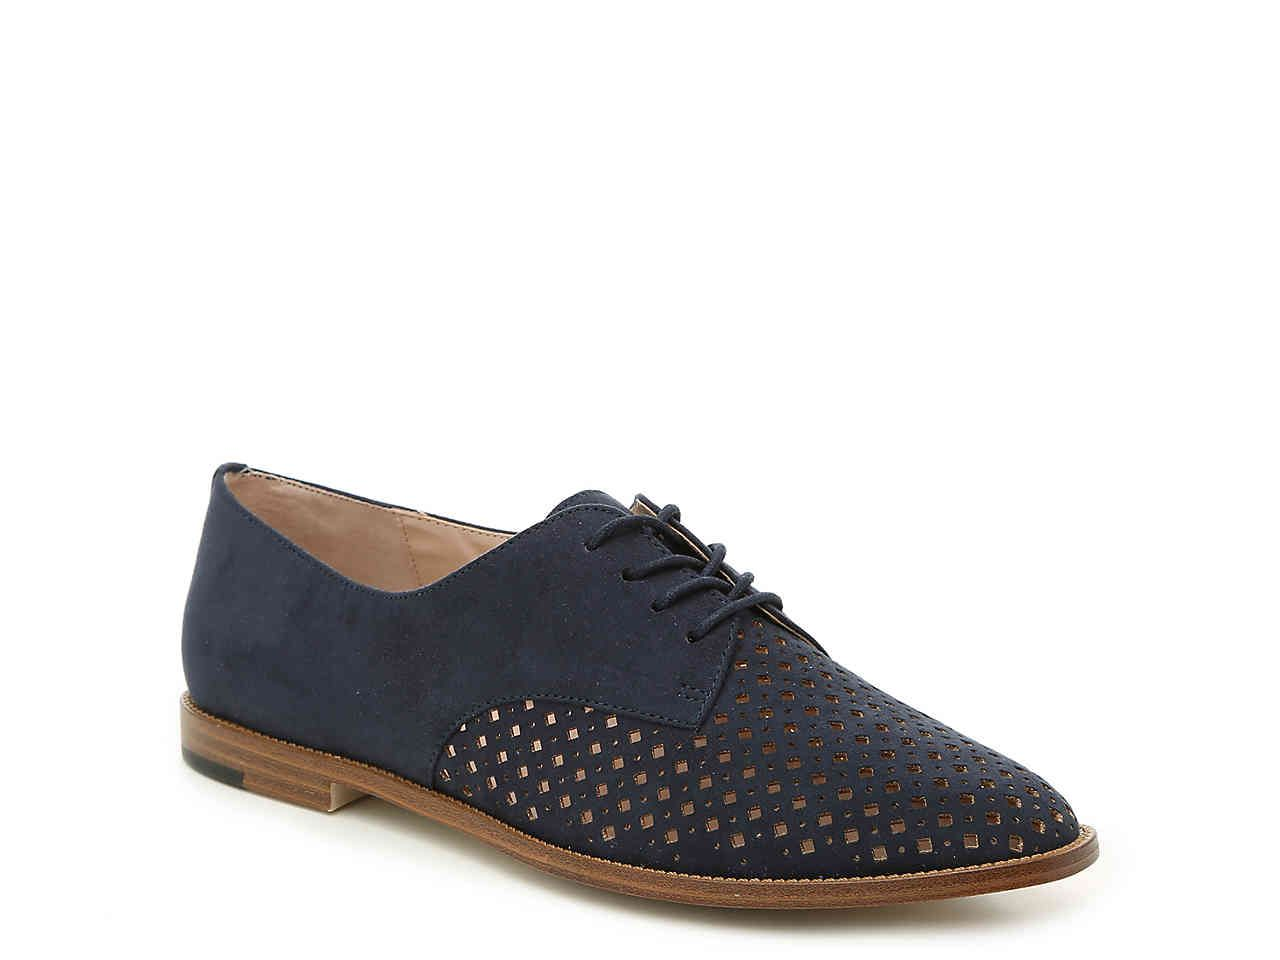 Maizy Oxford Size 9 Women Oxford Shoes Oxford Shoes Style Shoes